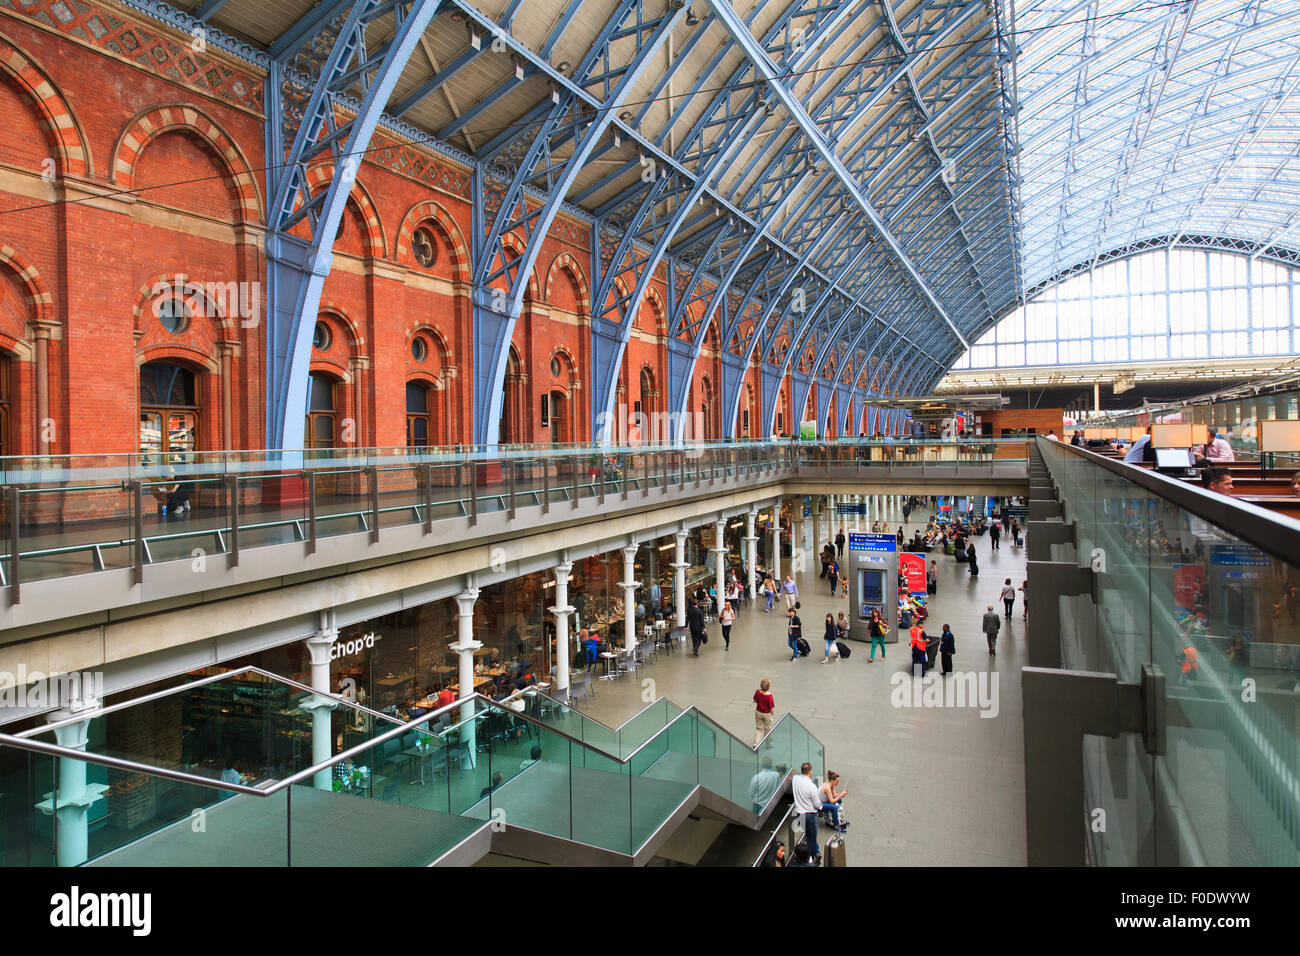 Inside the grade 1 listed St Pancras Railway Station with glazed roof Stock Photo